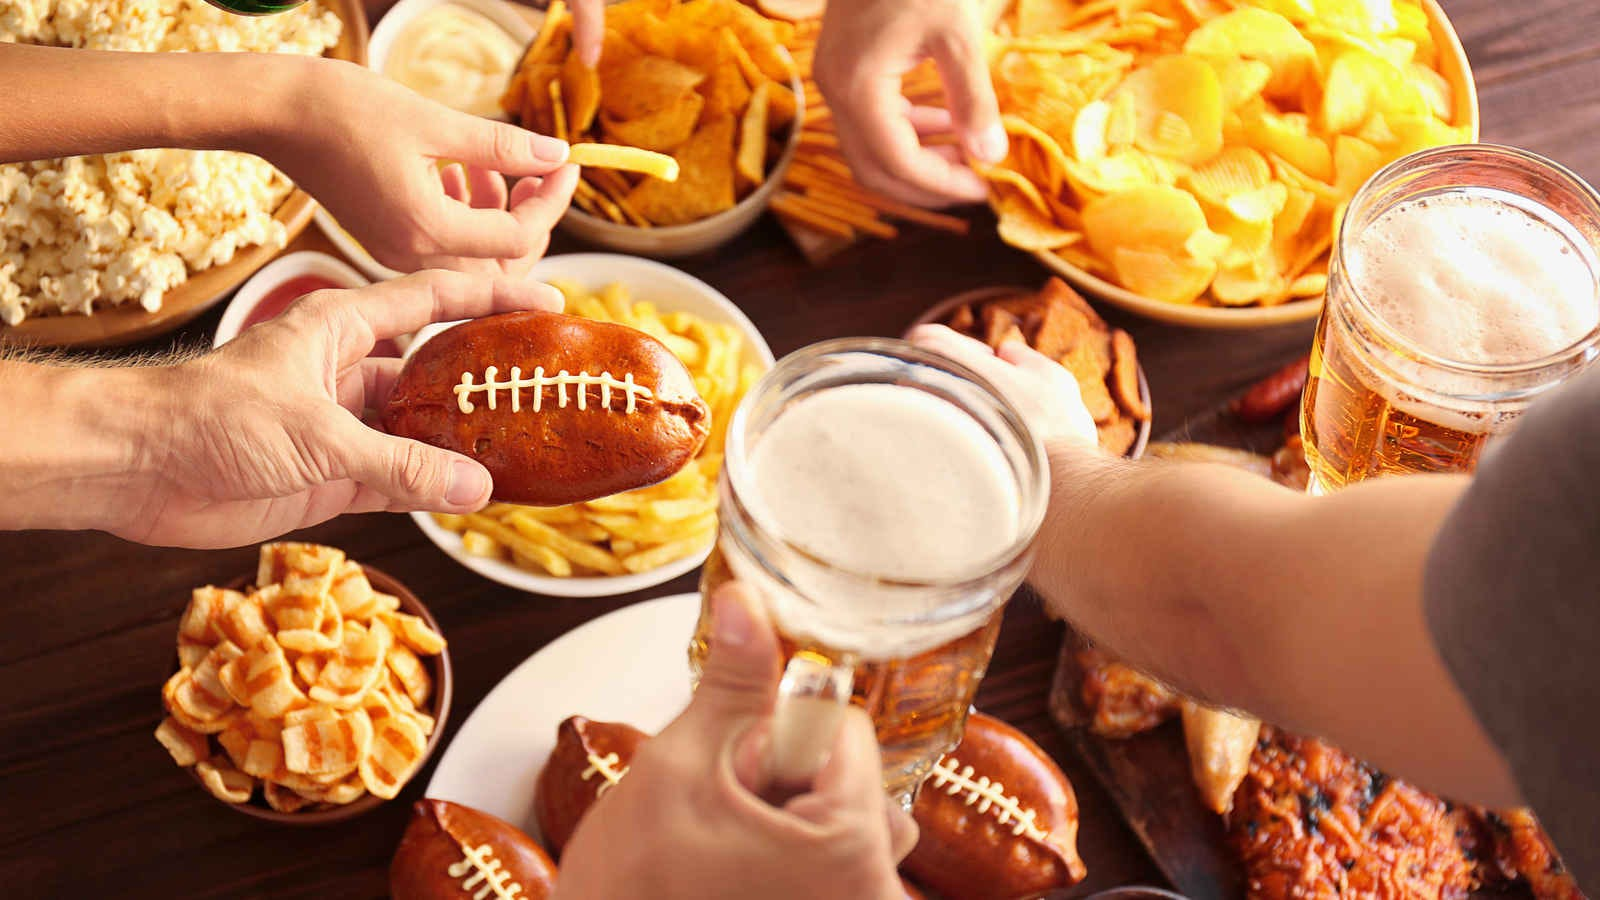 a table loaded with game day appetizers, surrounded by people digging in